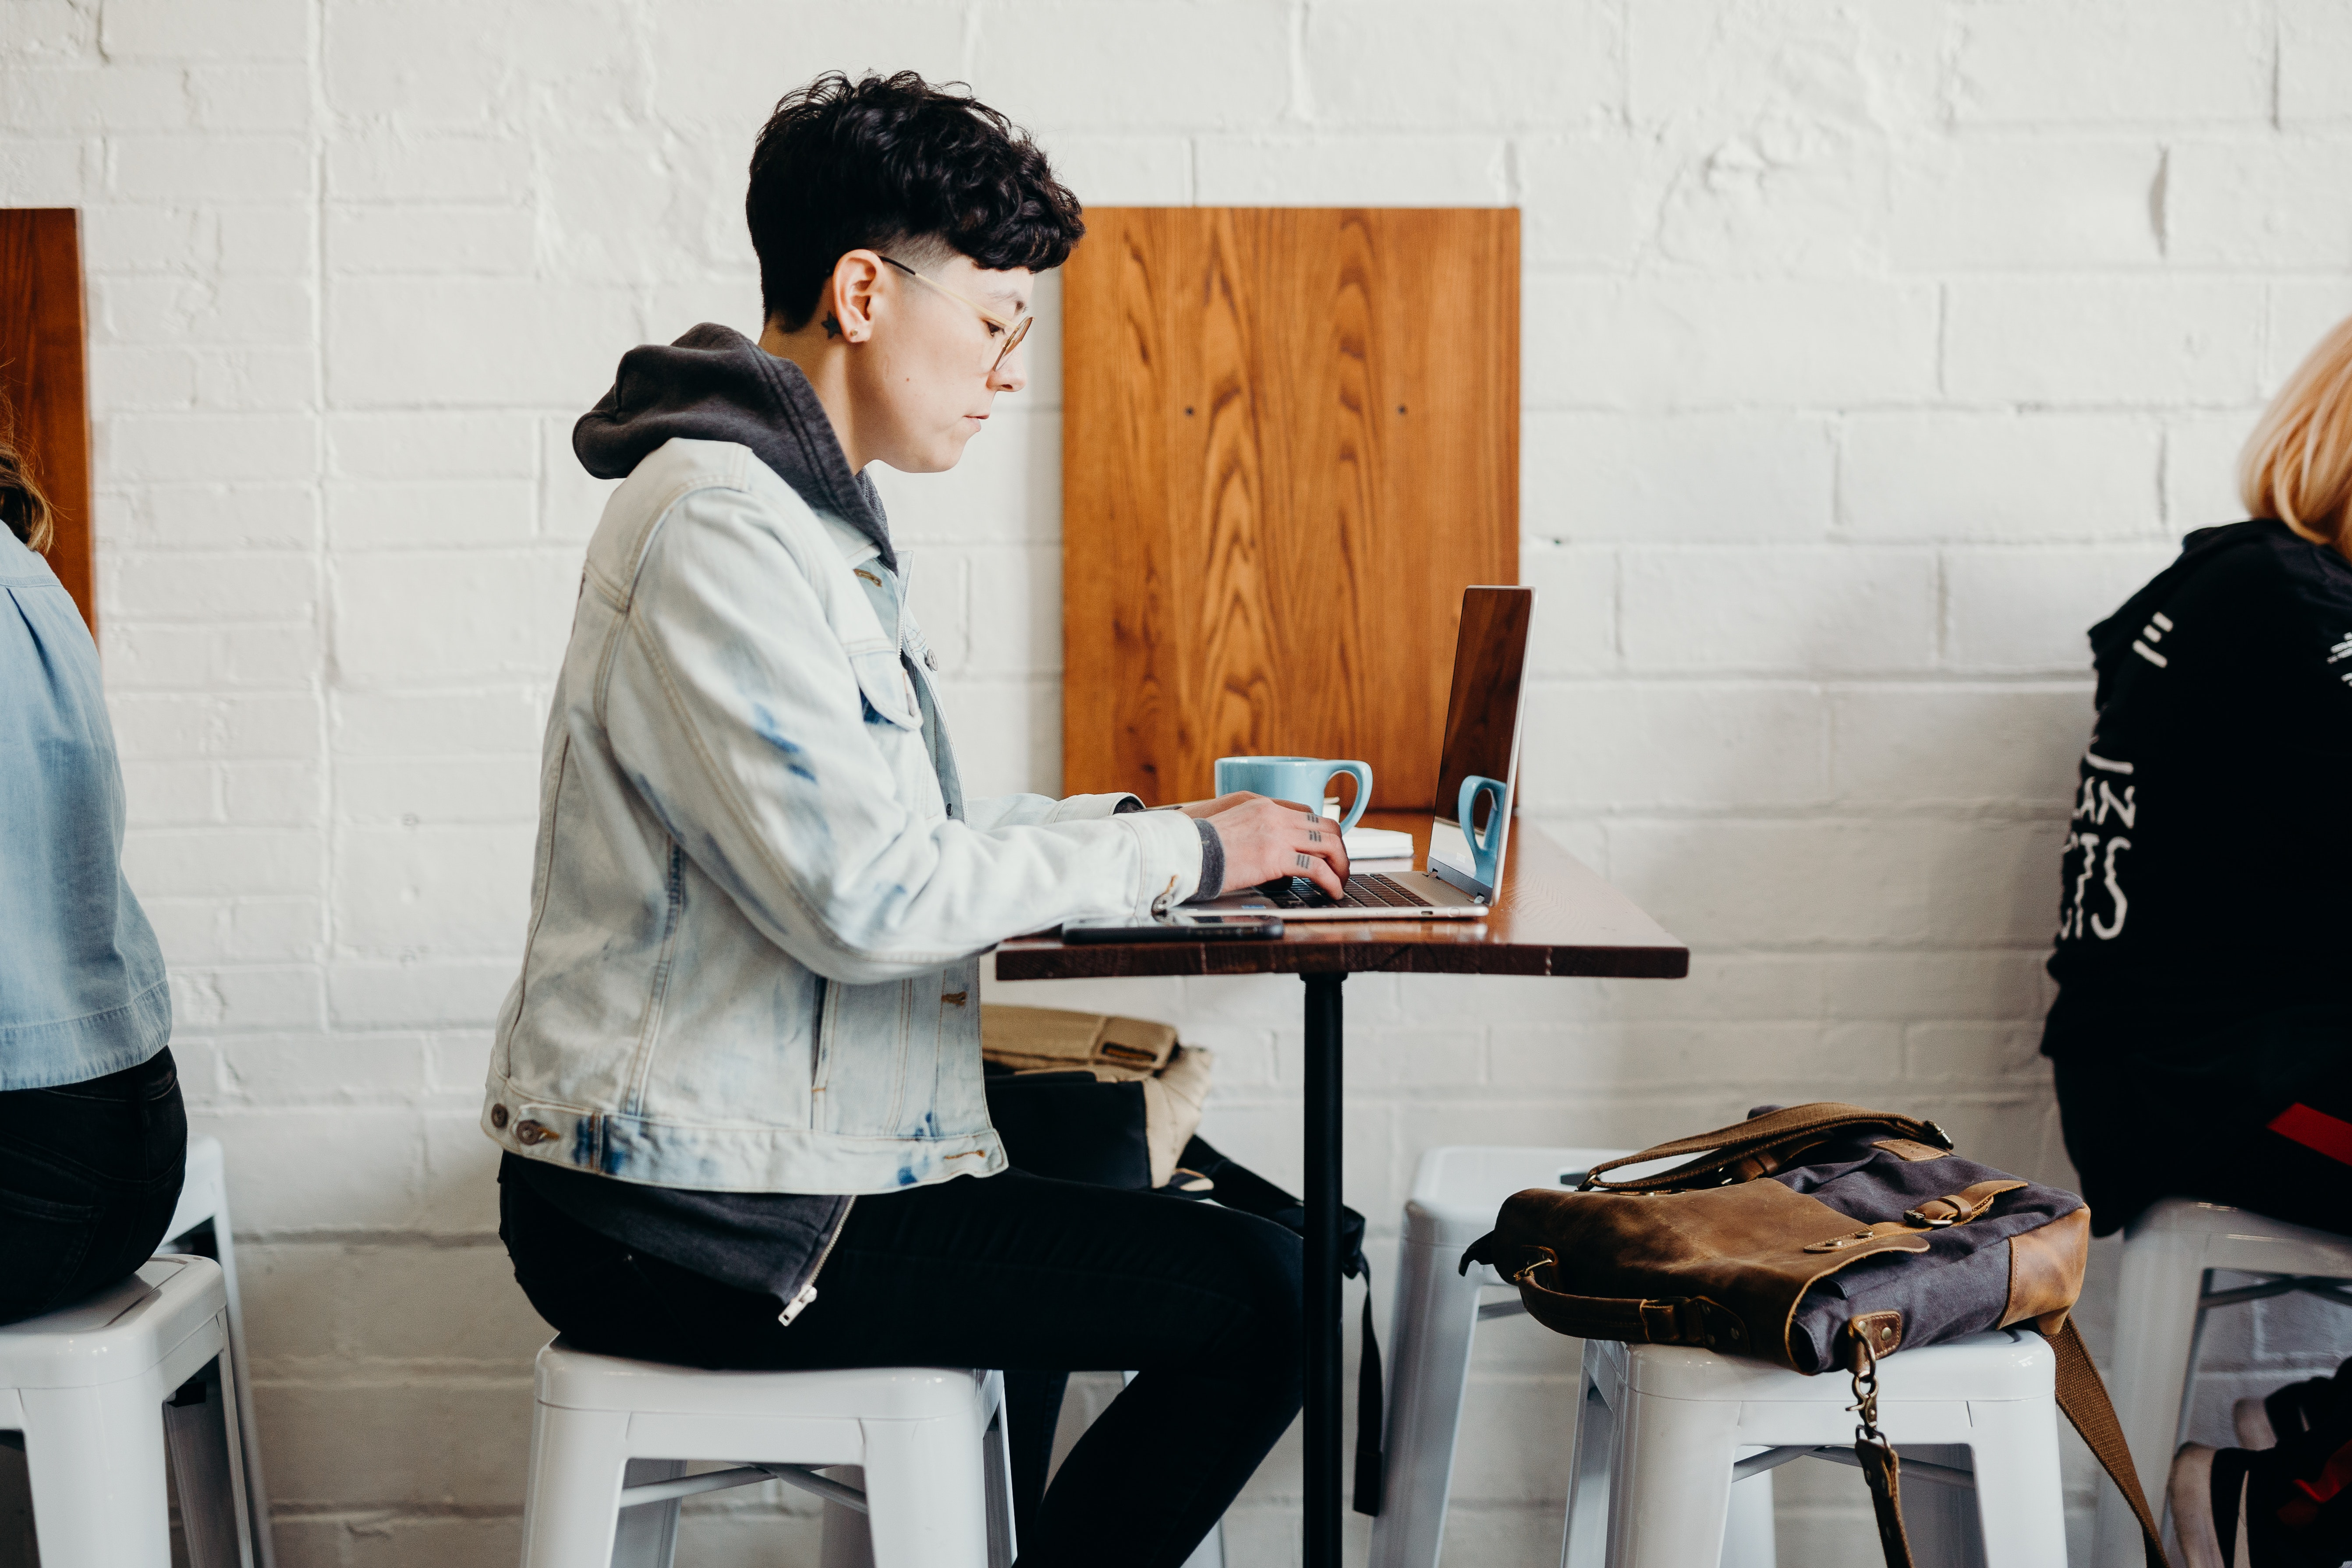 The Amount of Time an Average Person Spends Sitting Has Dramatically Changed